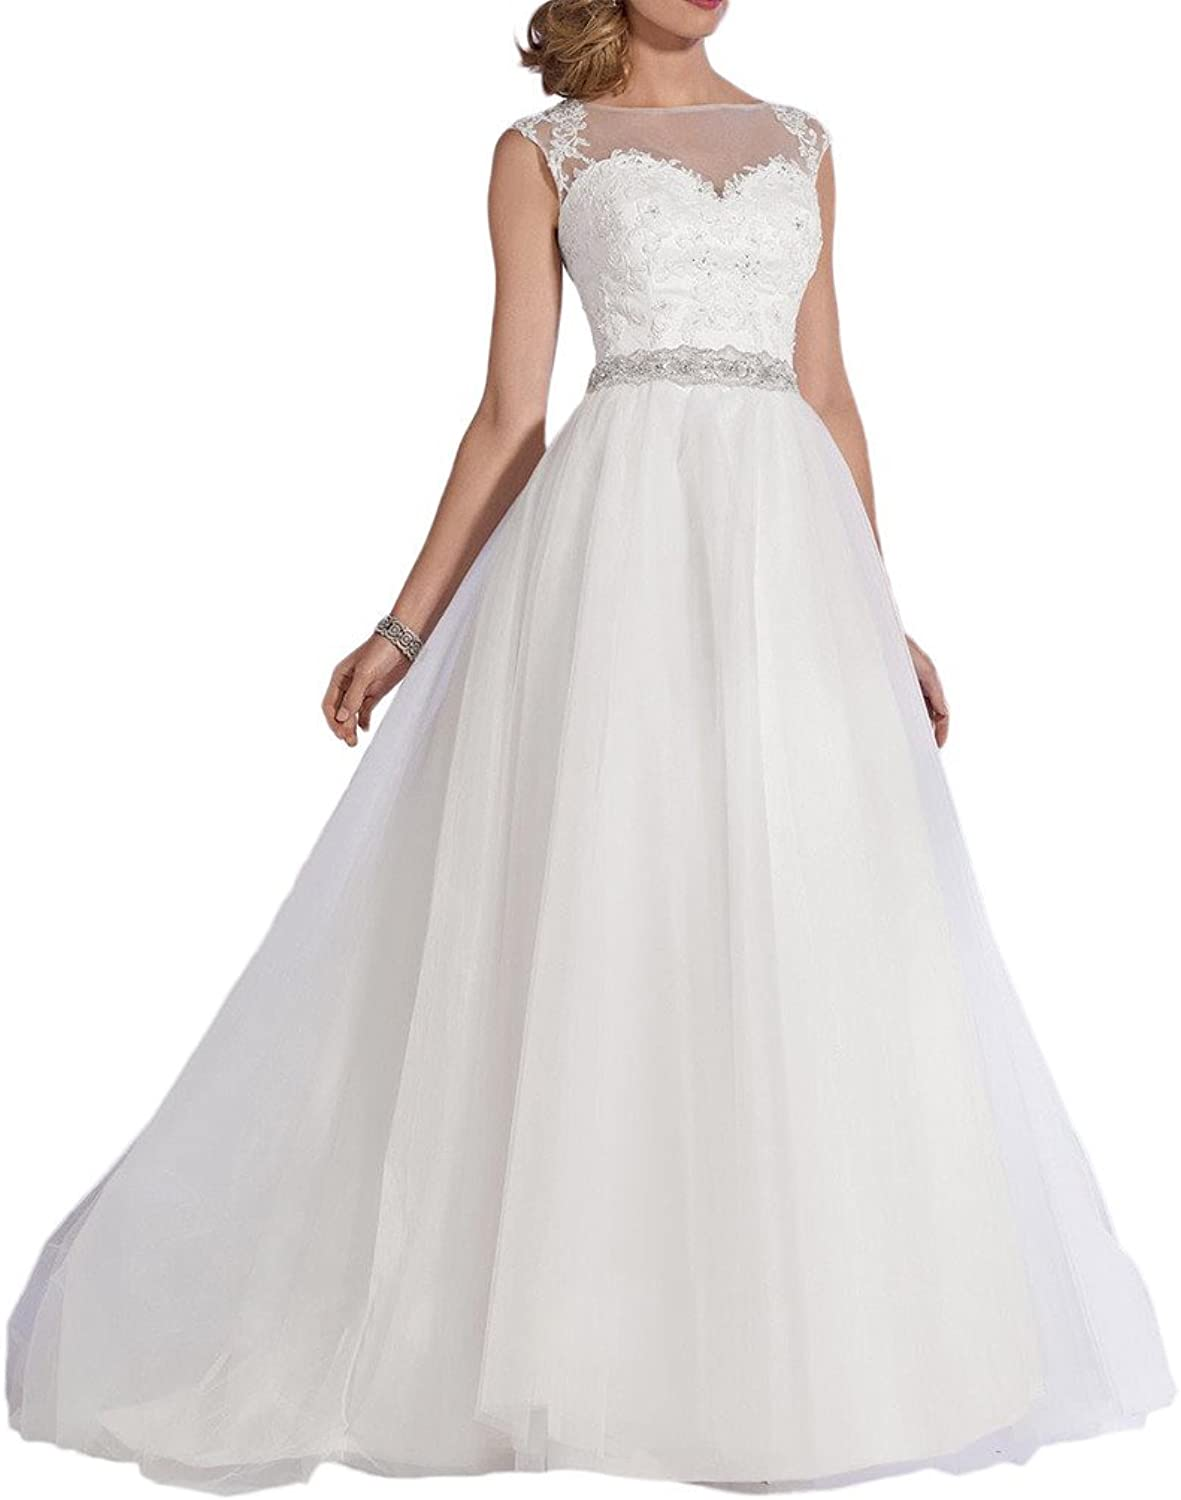 Avril Dress Wedding Gown Ball Gown Perfect Illusion Appliques Belt Long Beaded